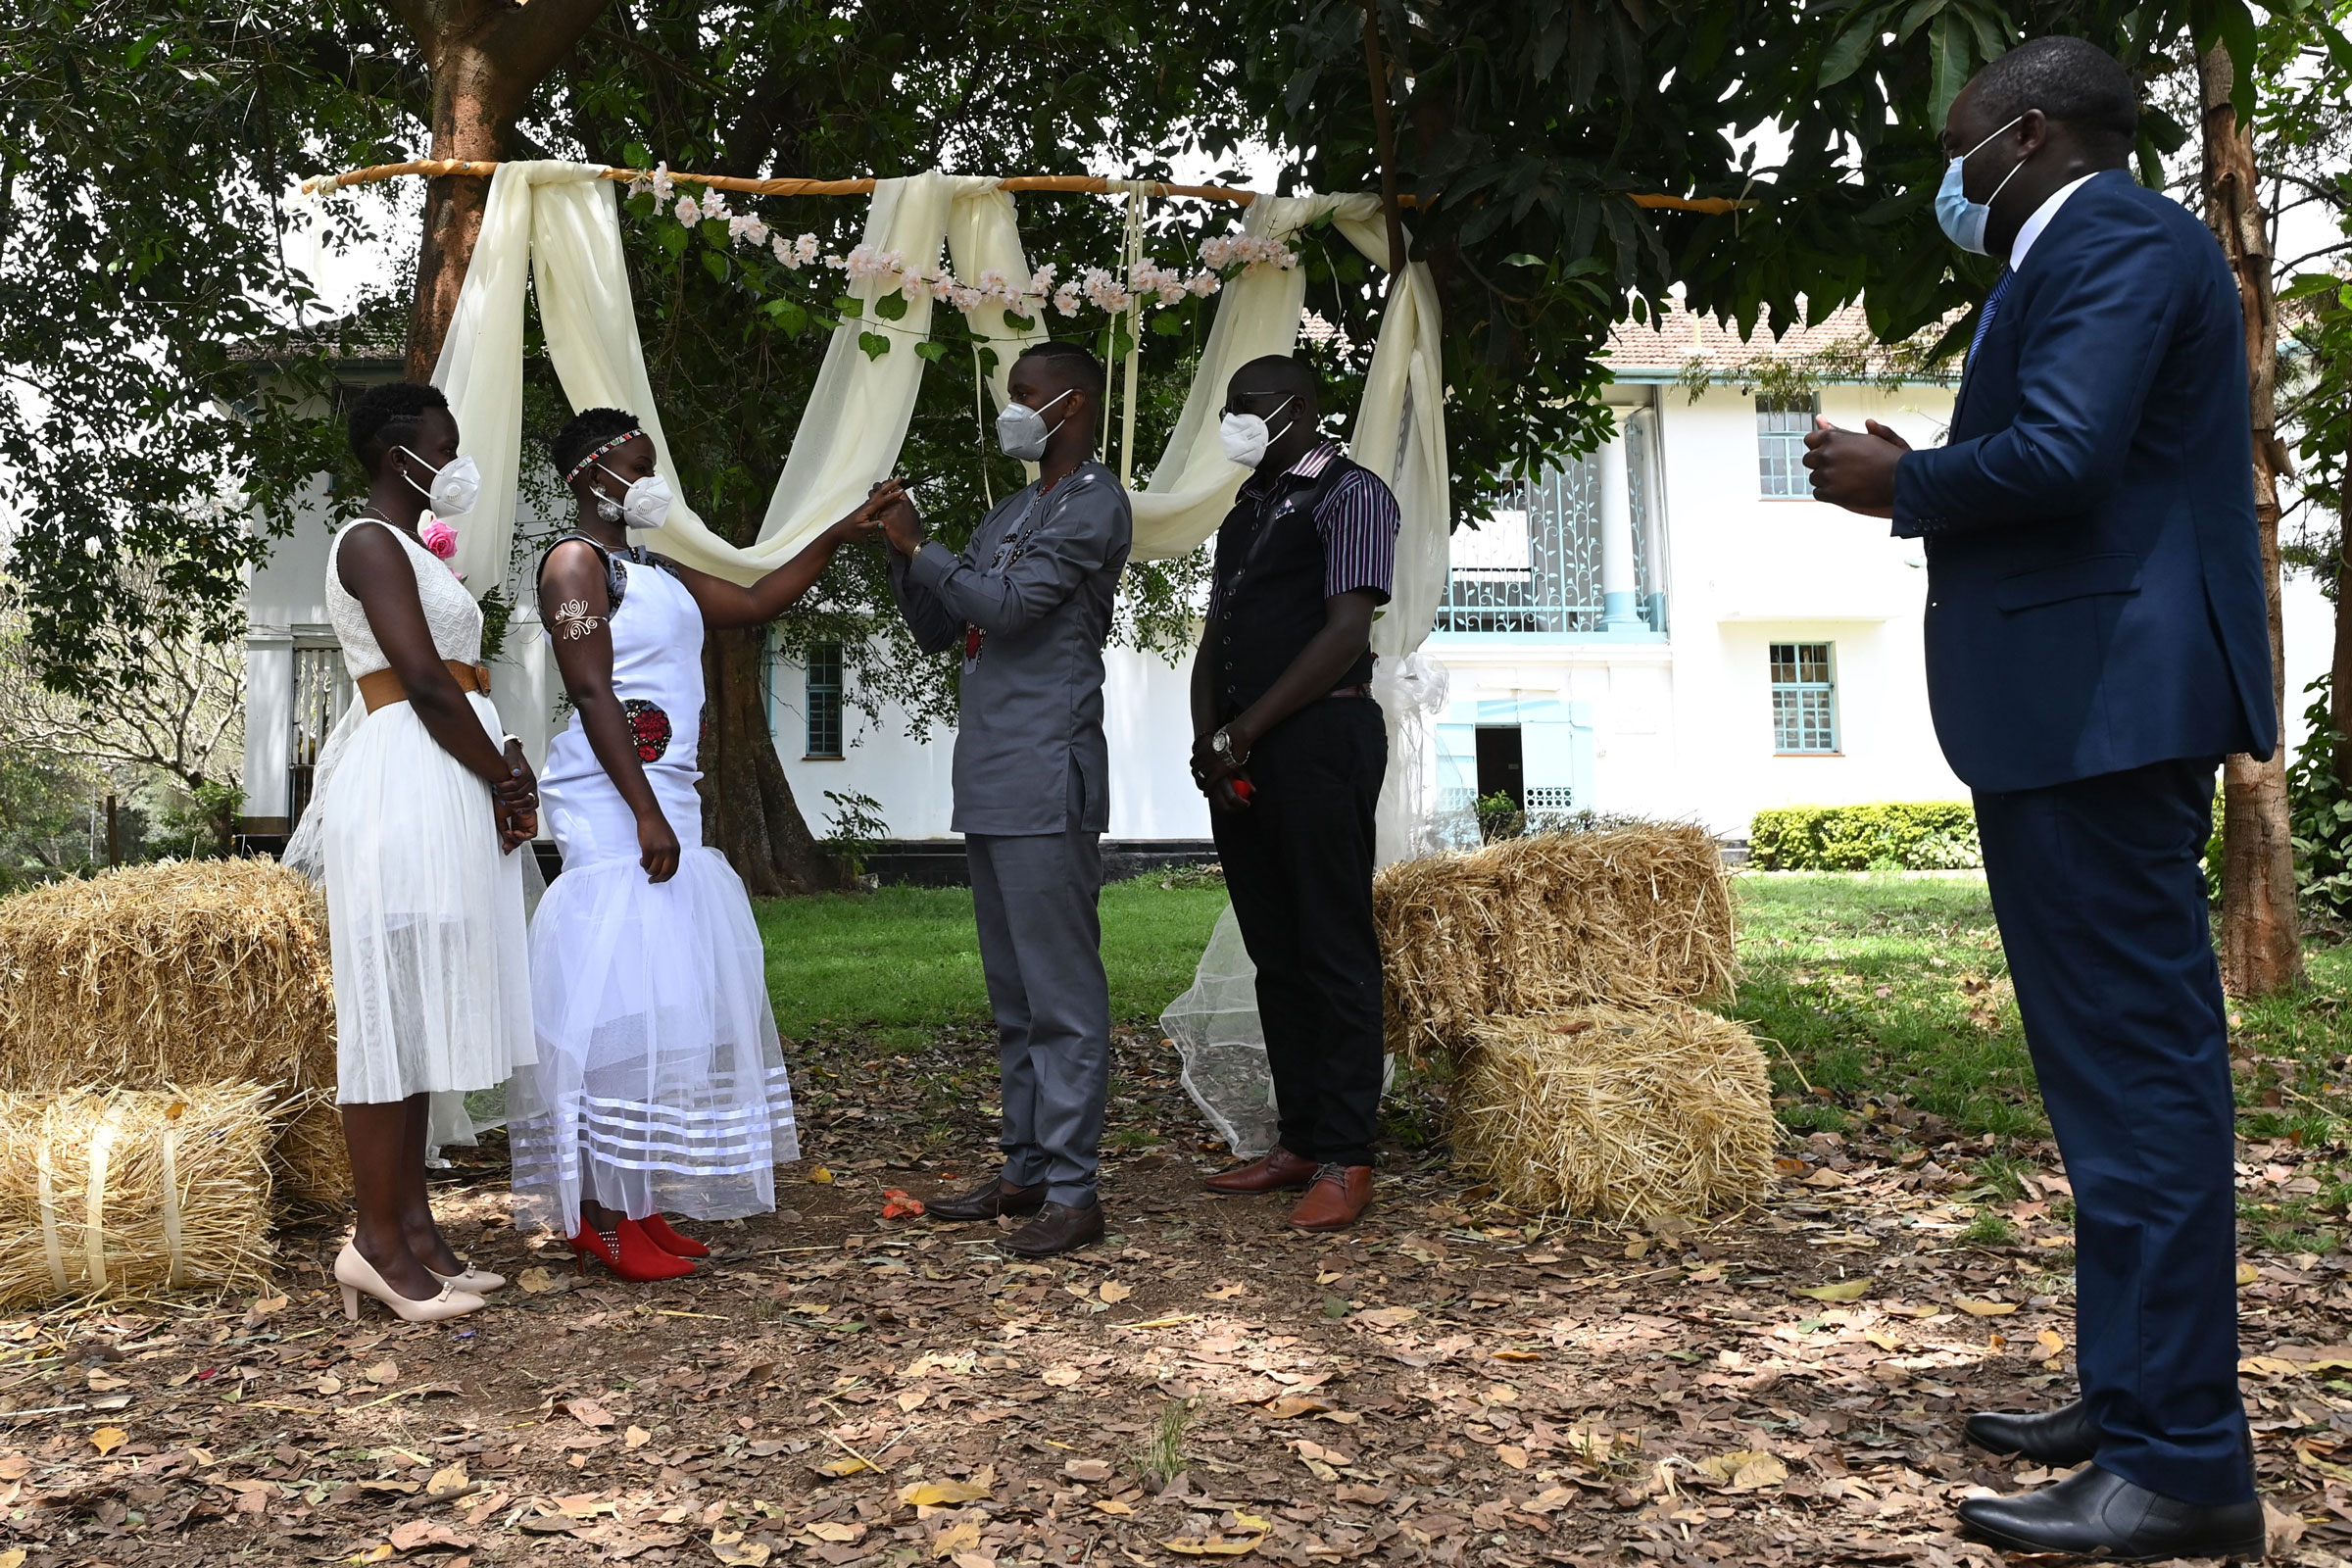 Charles Otieno and Jackline Adhiambo exchange rings during their wedding in Nairobi, Kenya, on Friday. The wedding, attended by just a few relatives, lasted for only 15 minutes because of coronavirus restrictions.